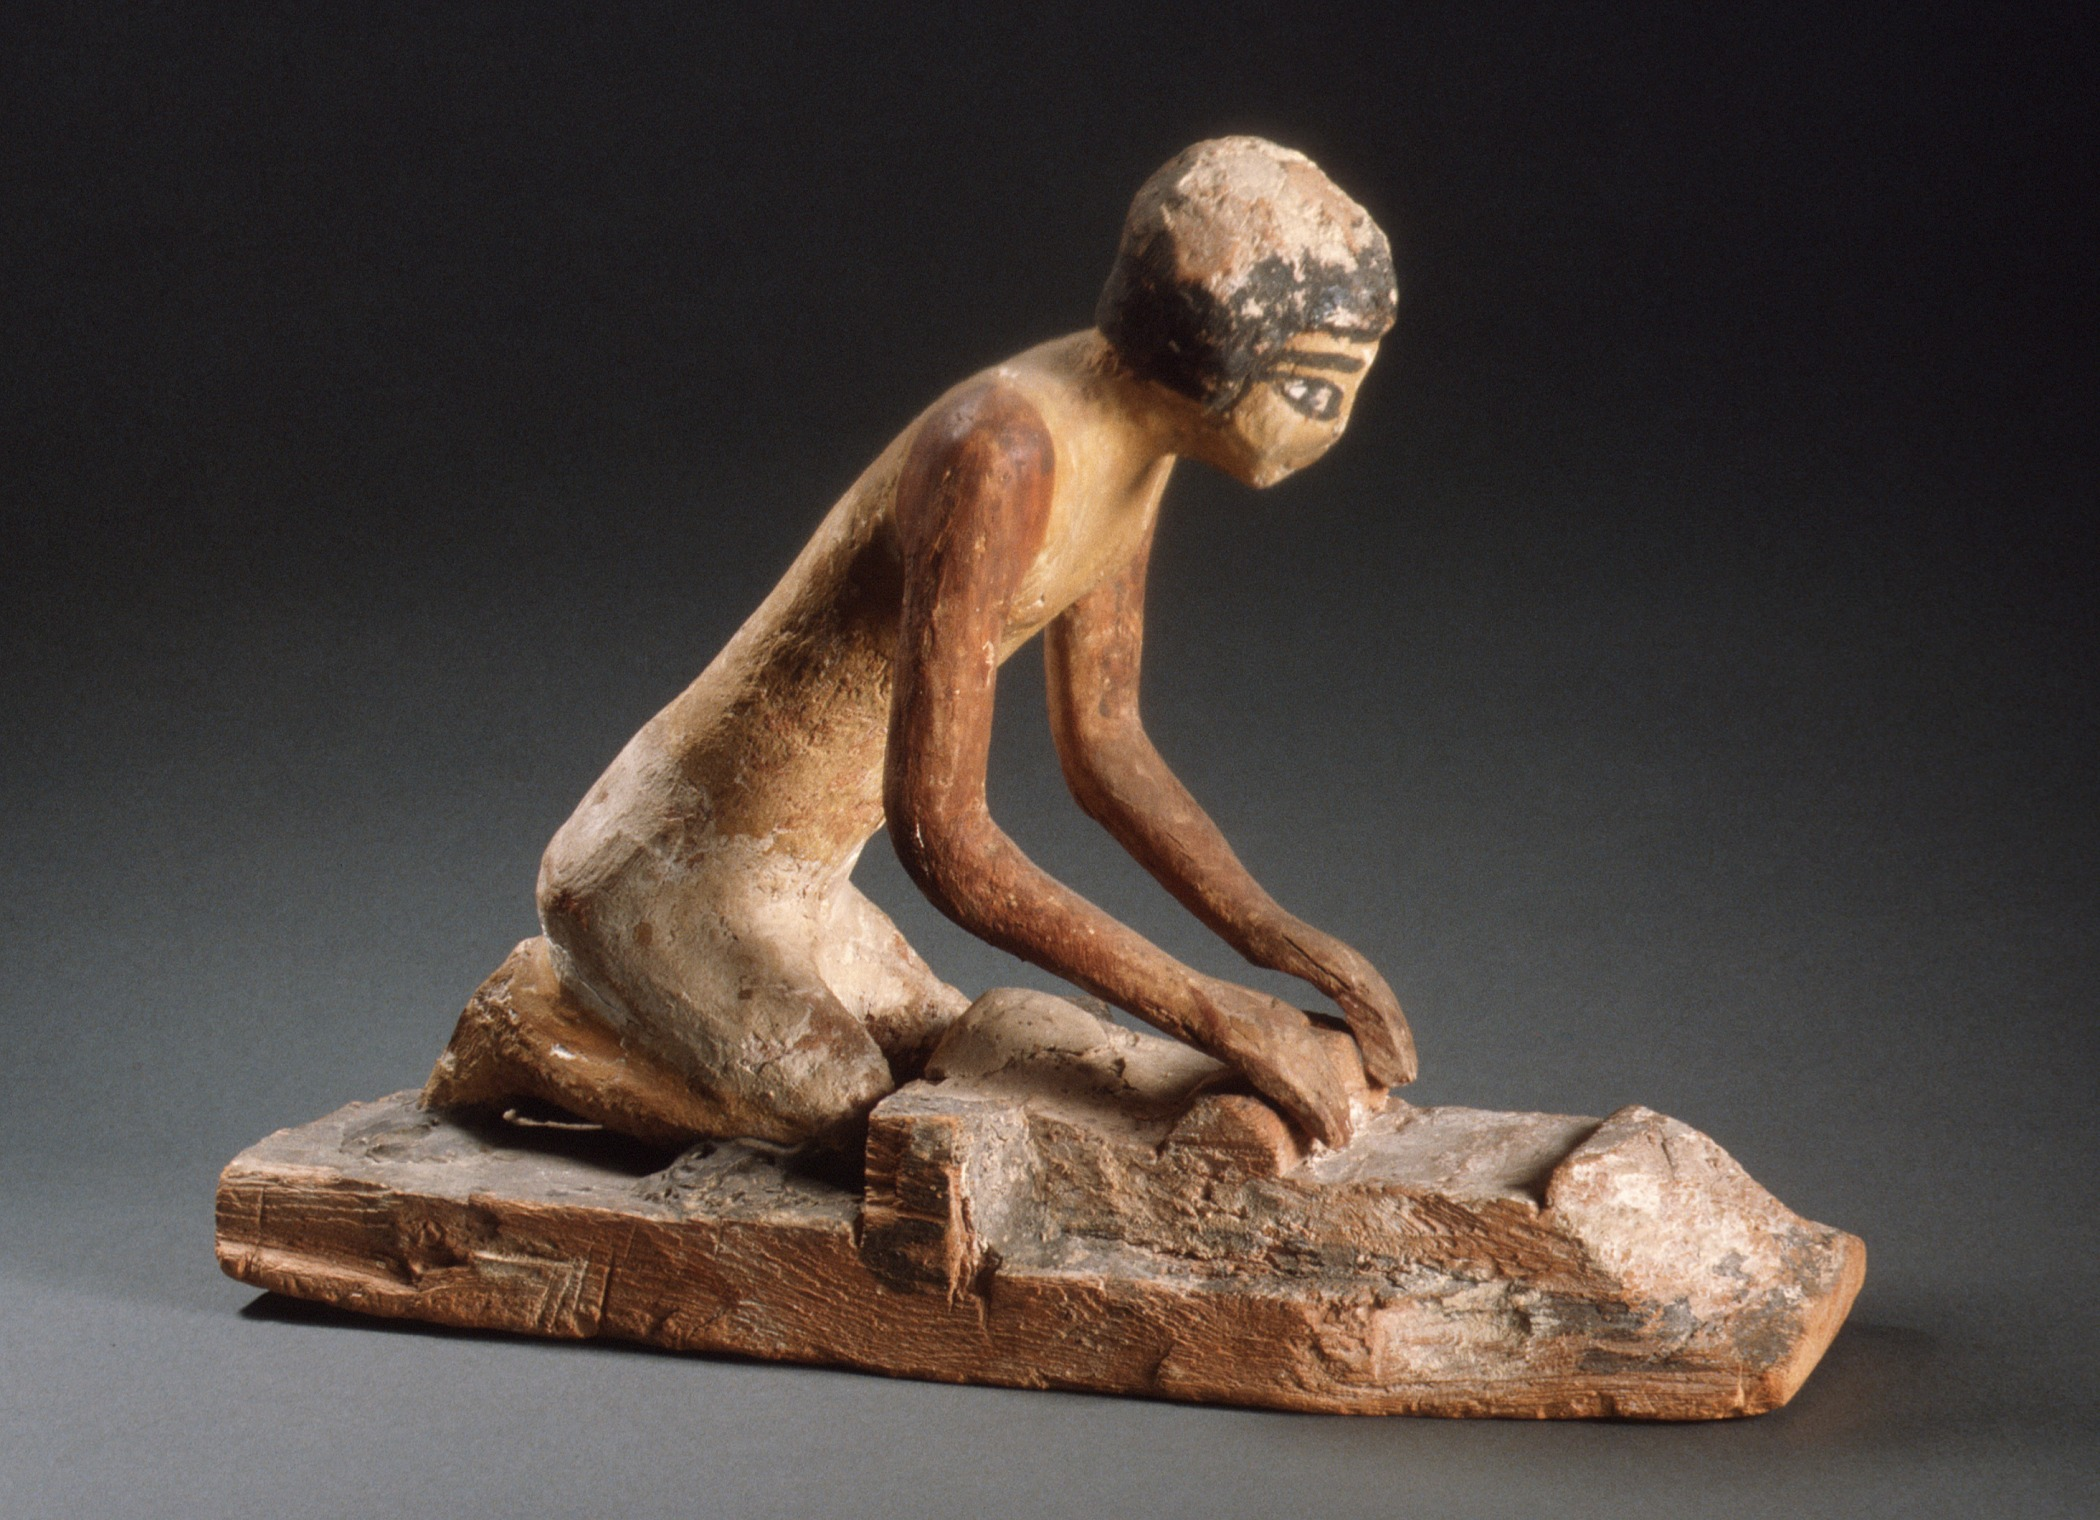 Model of a woman grinding grain, which she'll use both to make bread and to brew beer. - From Egypt, First Intermediate Period/early Middle Kingdom, 2134-1991 BCE. Courtesy of Los Angeles County Museum.